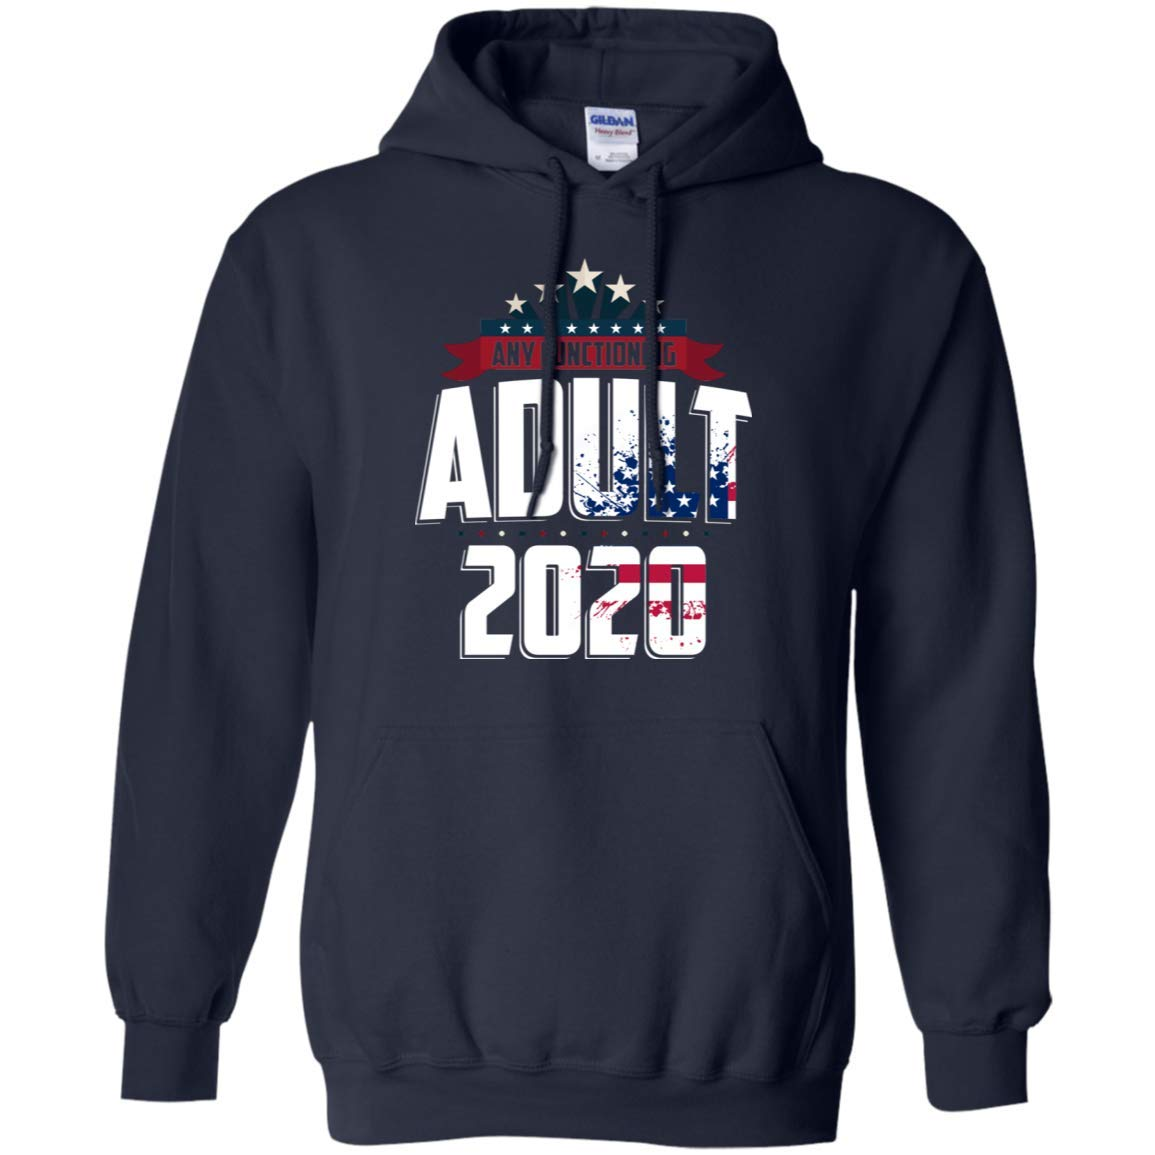 Teely Shop Mens Any Functioning Adult 2020:G185 Gildan Pullover Hoodie 8 oz.